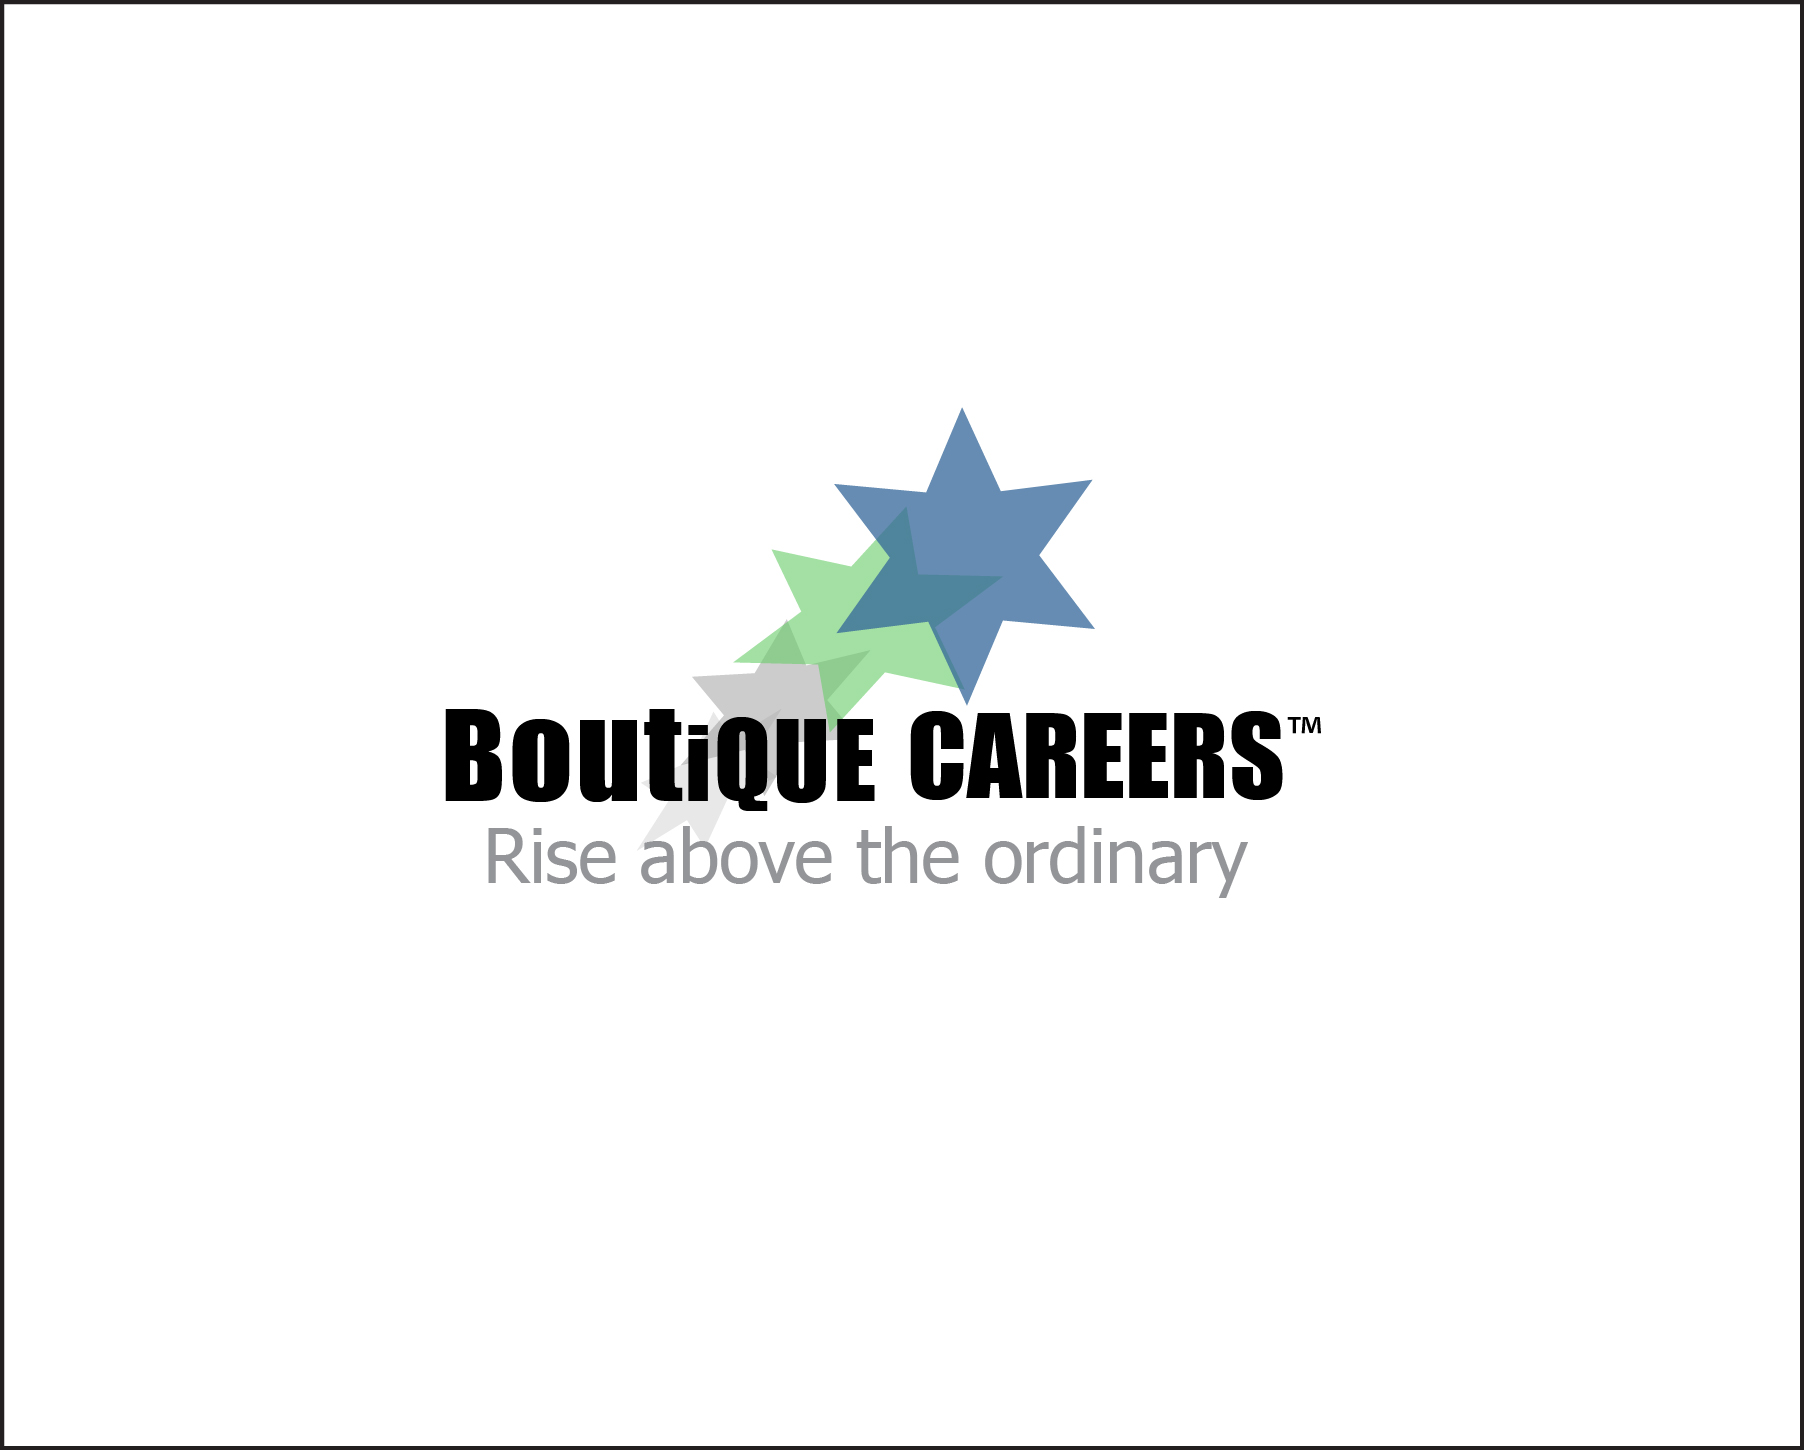 Logo Design by Nancy Grant - Entry No. 5 in the Logo Design Contest Captivating Logo Design for Boutique Careers.